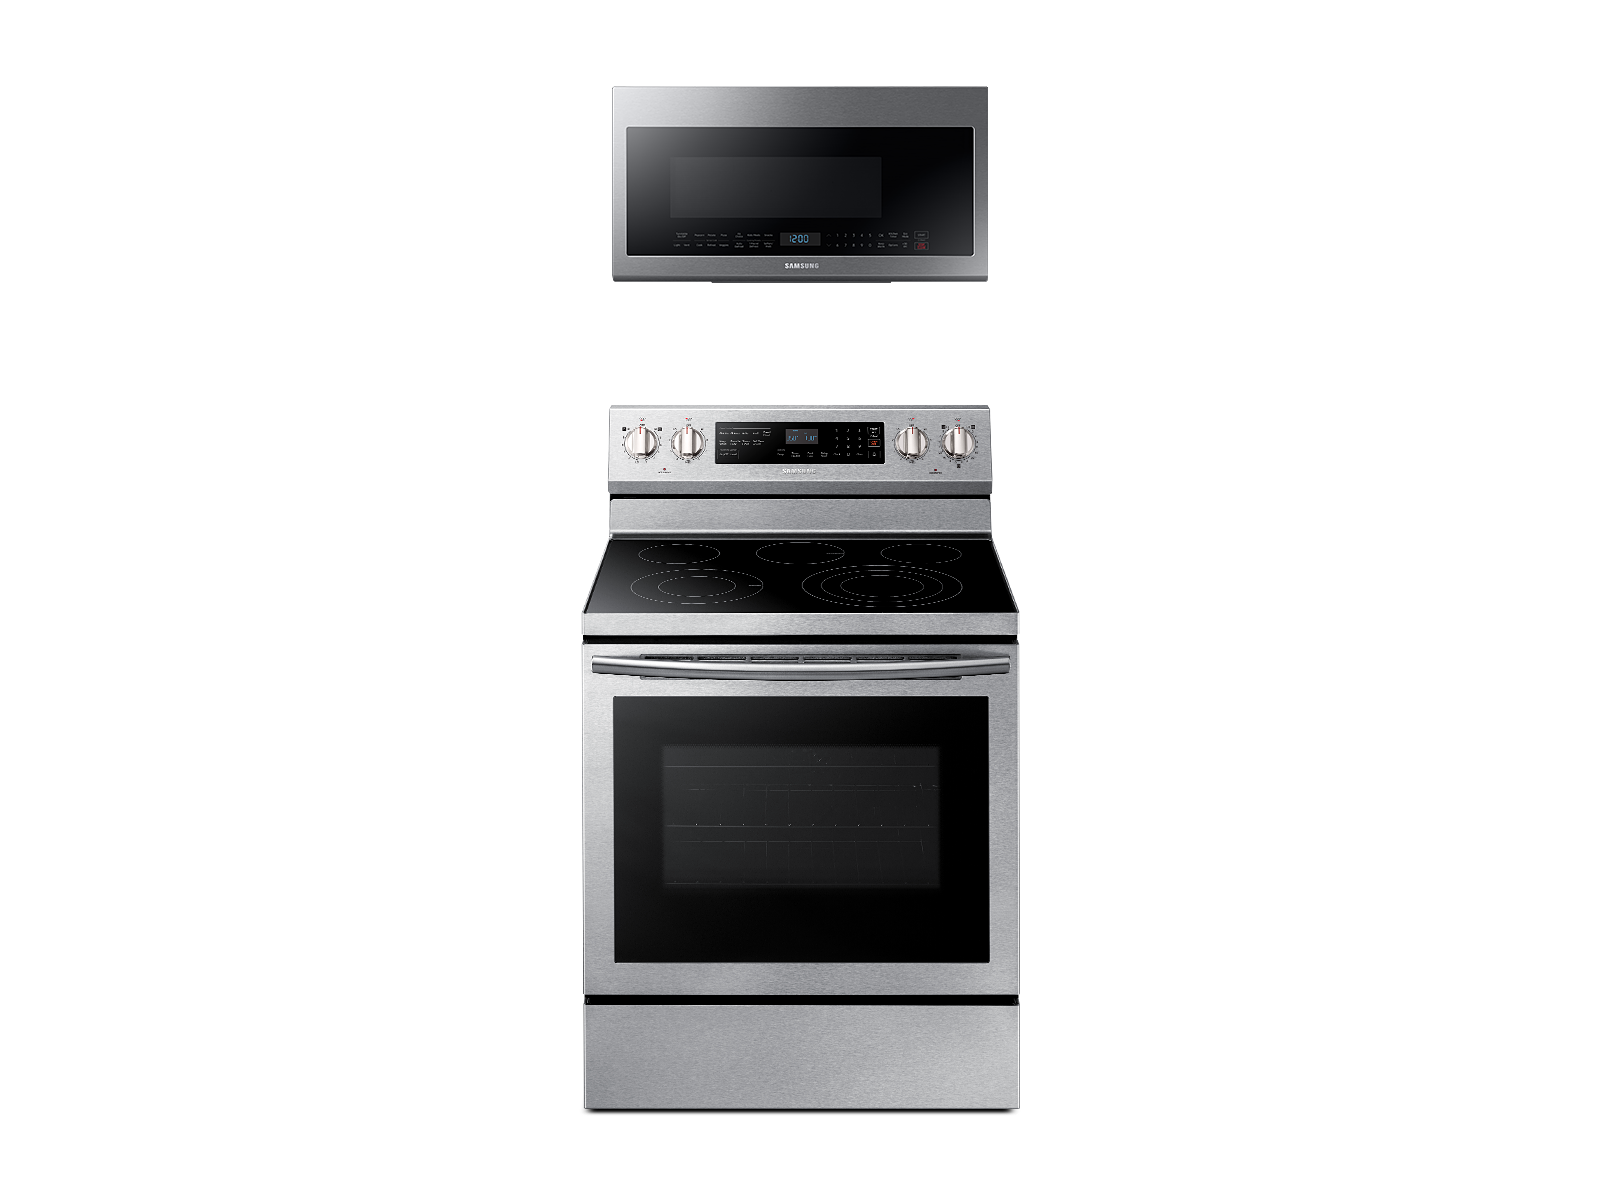 Samsung Freestanding Electric Range with True Convetion + Over-the-Range Microwave in Stainless Steel